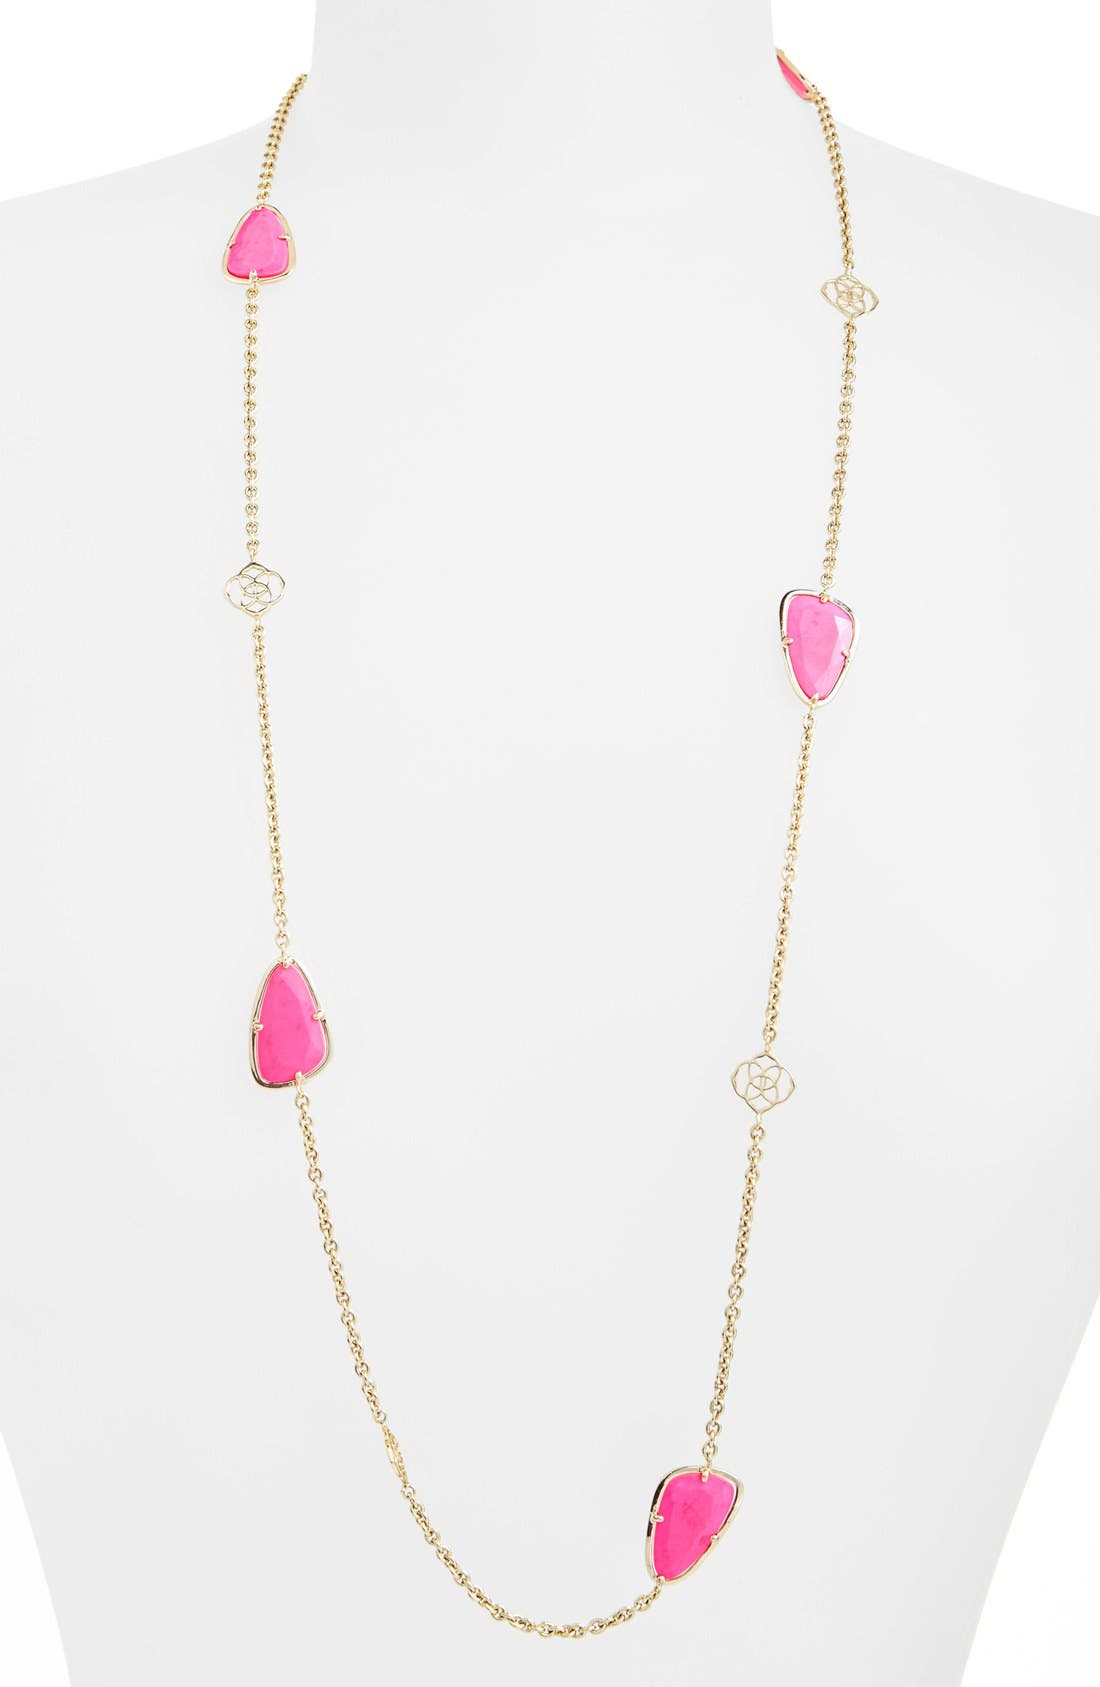 Alternate Image 1 Selected - Kendra Scott 'Kinley' Long Station Necklace (Nordstrom Exclusive)